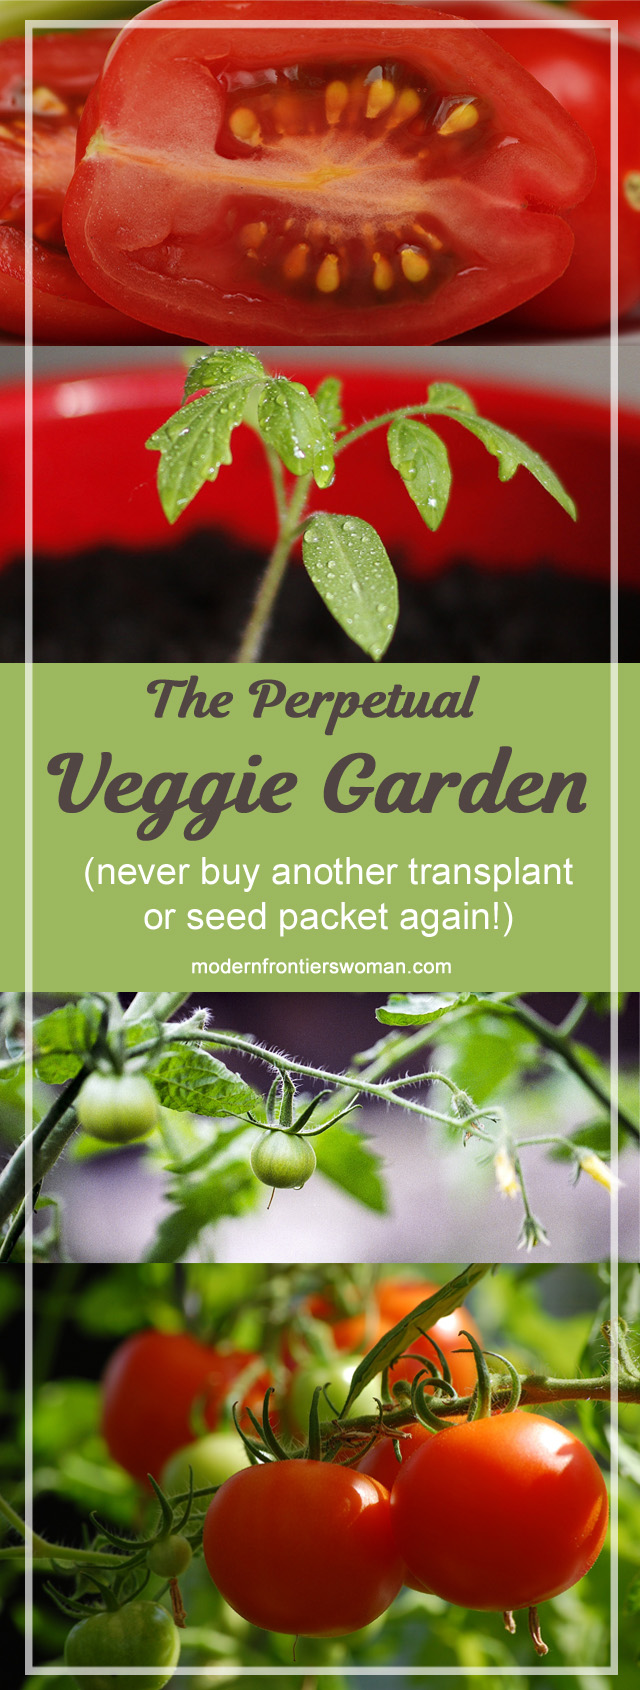 The perpetual veggie garden (never buy another transplant or seed packet again!)